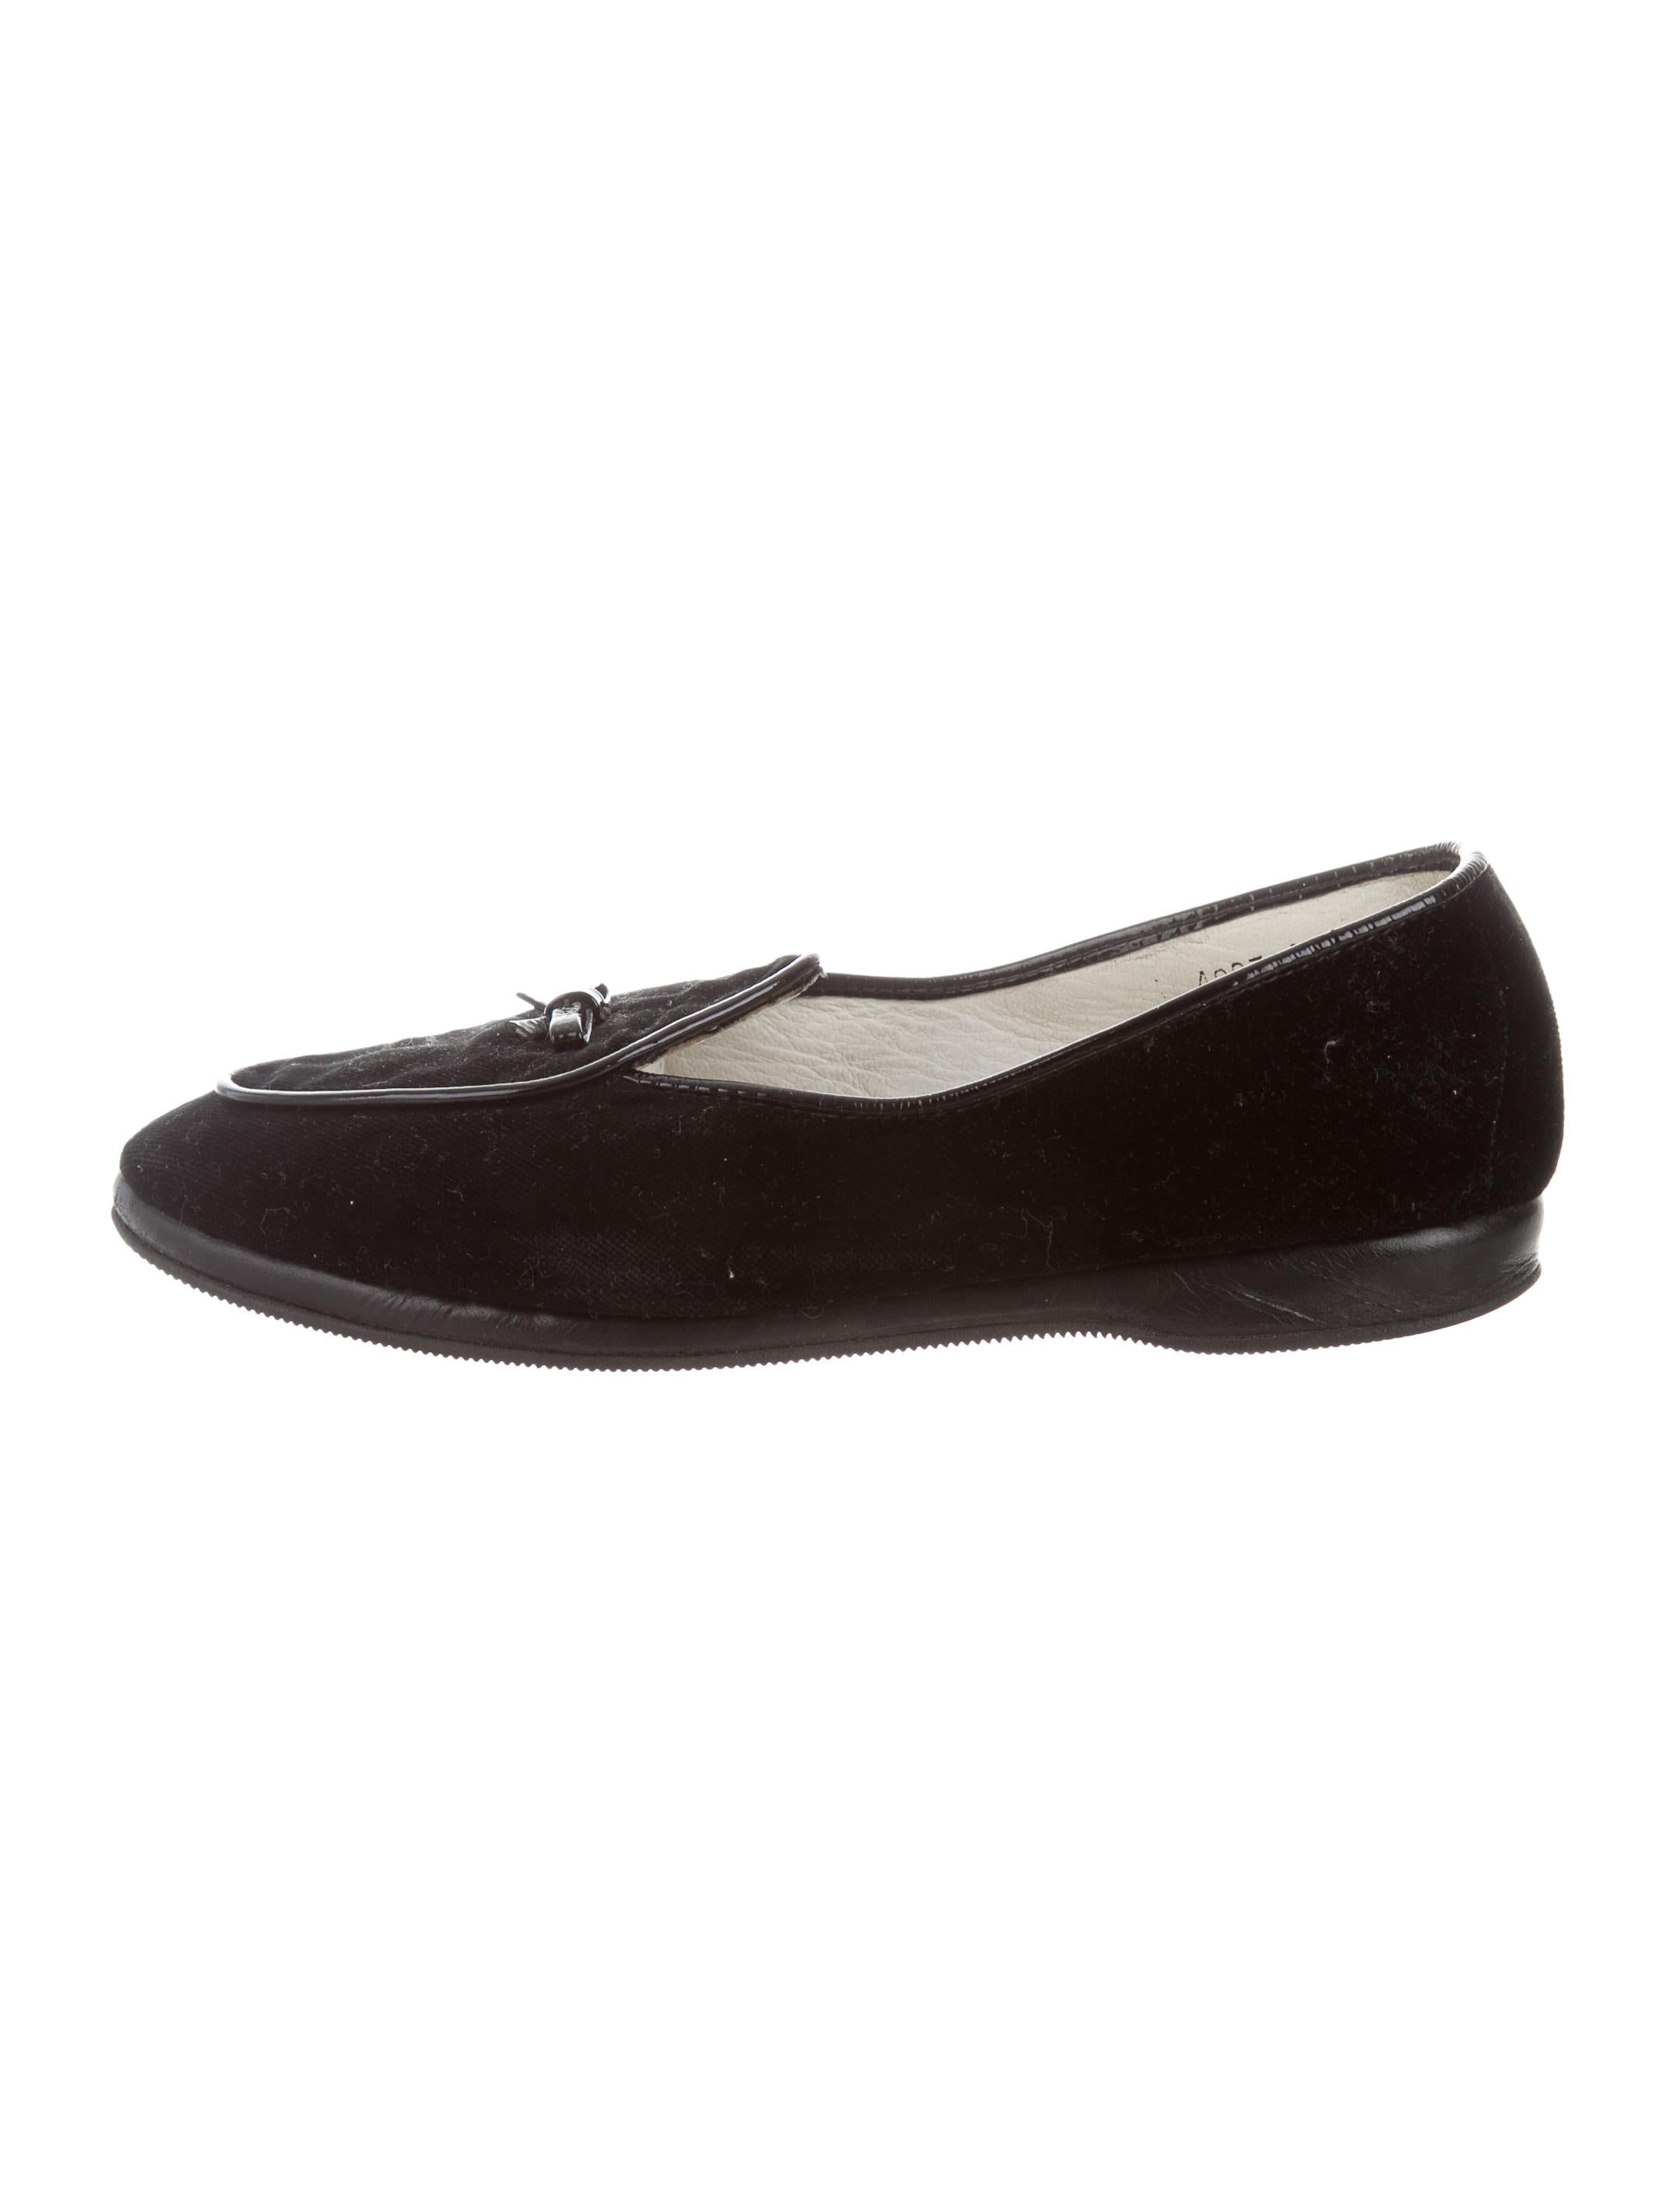 Belgian Shoes Suede Round-Toe Flats buy cheap pay with visa finishline for sale buy cheap Manchester pictures cheap online sale prices hNVBJOhyD